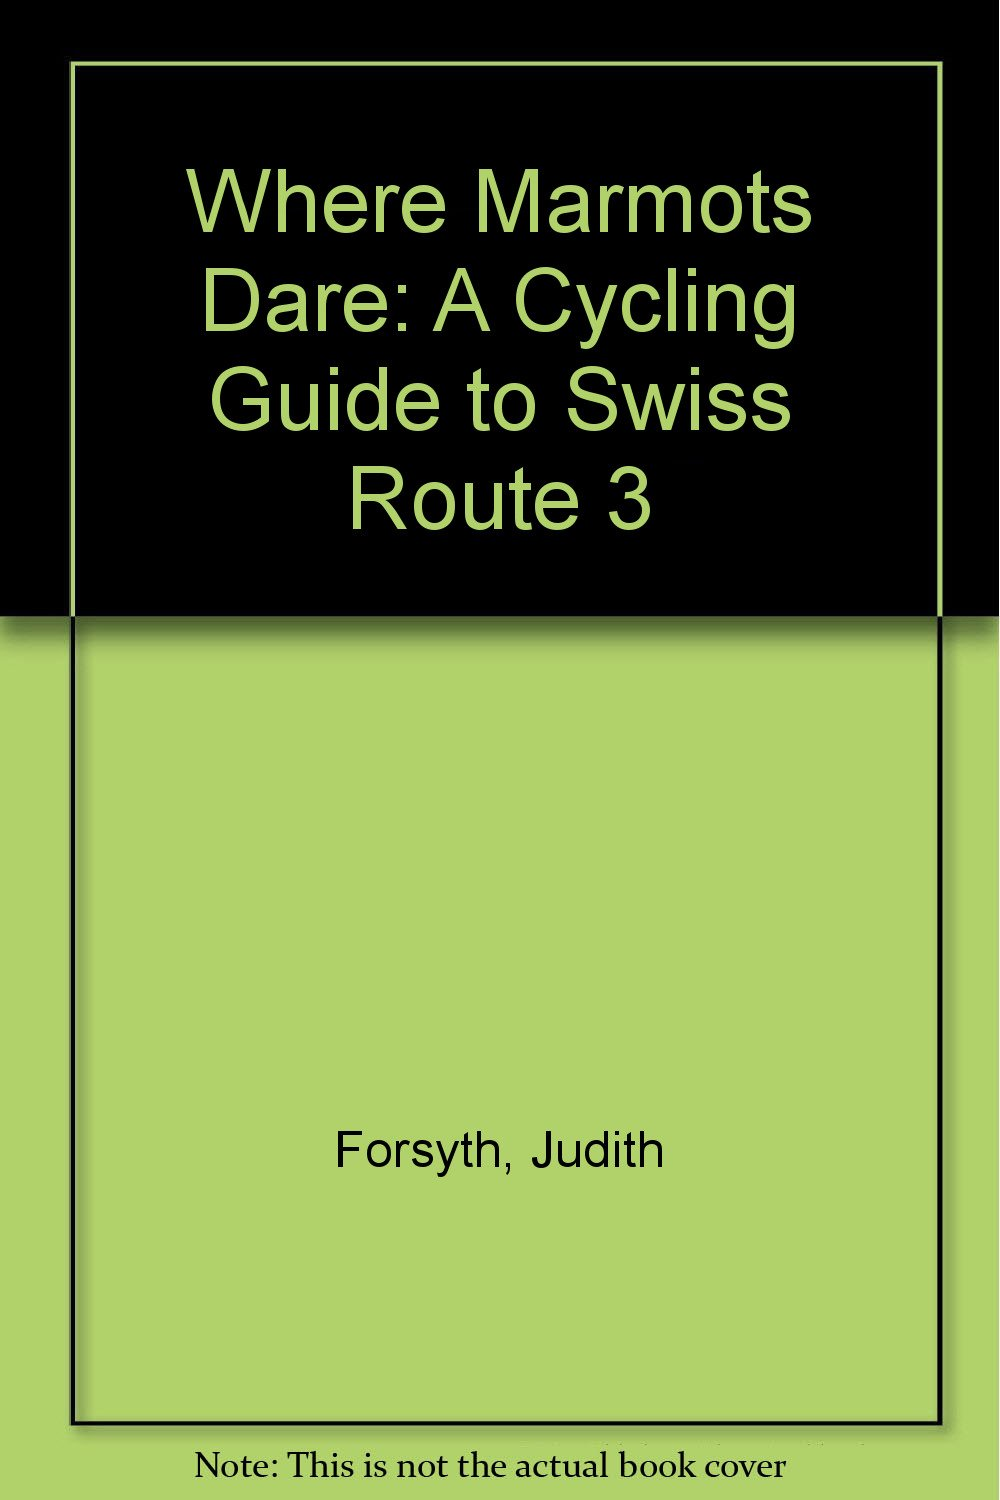 Download Where Marmots Dare: A Cycling Guide to Swiss Route 3 PDF